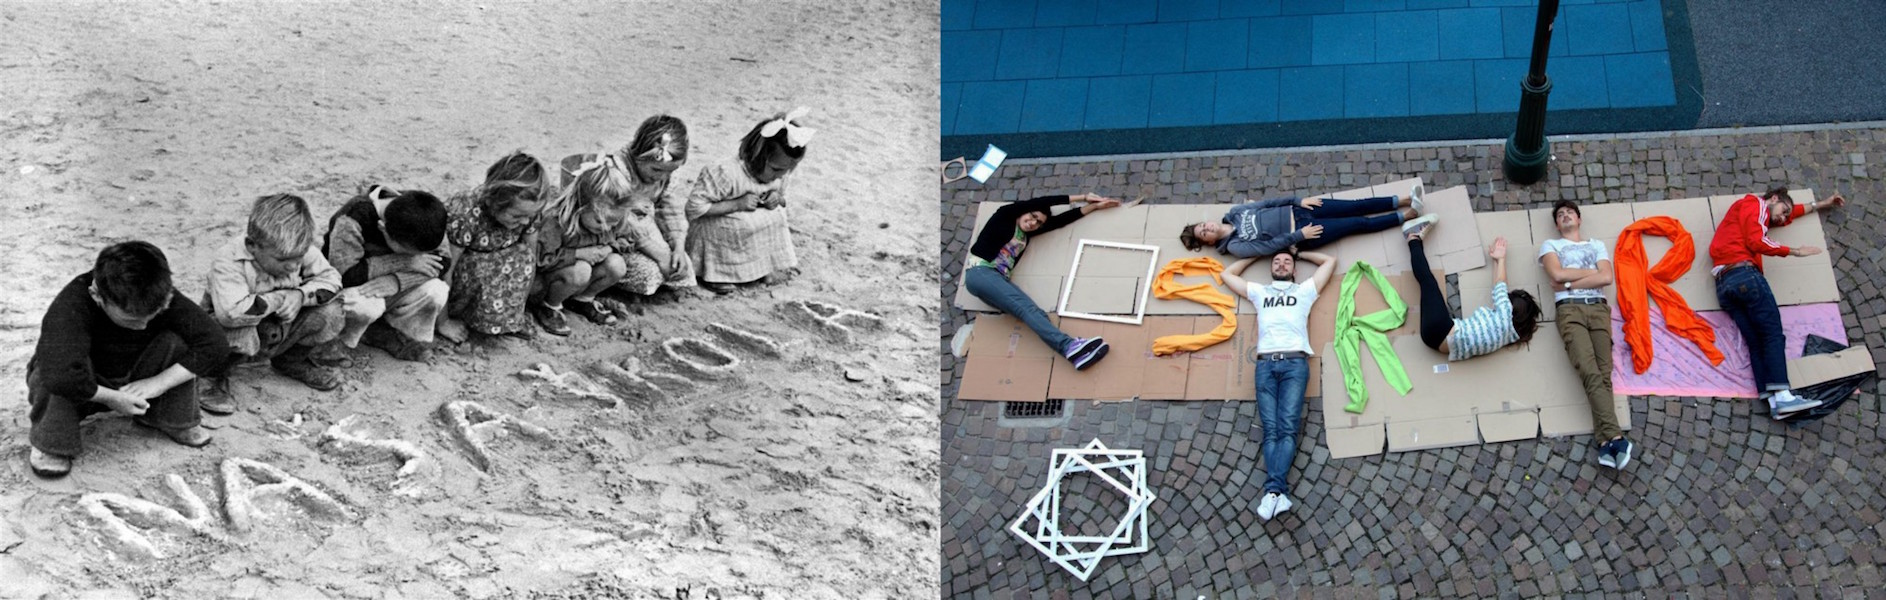 (Left) Circa 1946 in Egypt, children look at the Serbo-Croatian words 'nasa skola' (our school) written in the sand in a refugee camp. (Right) In 2014 in Italy, adolescents spell the word 'costruire' (to build), chosen to reflect the need to build a new g